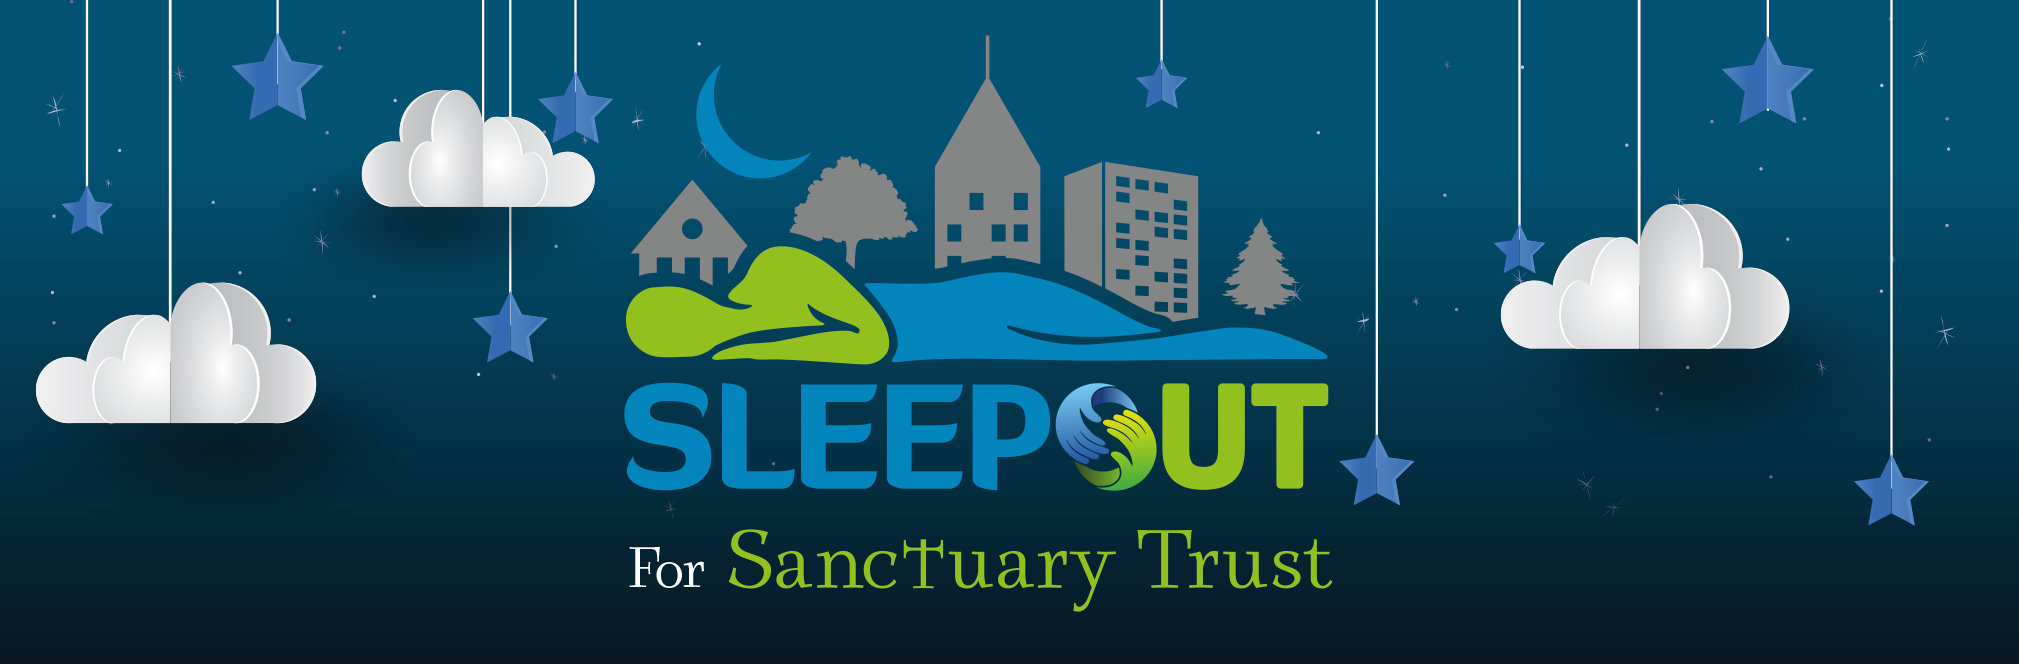 Sleep Out for Sanctuary Trust